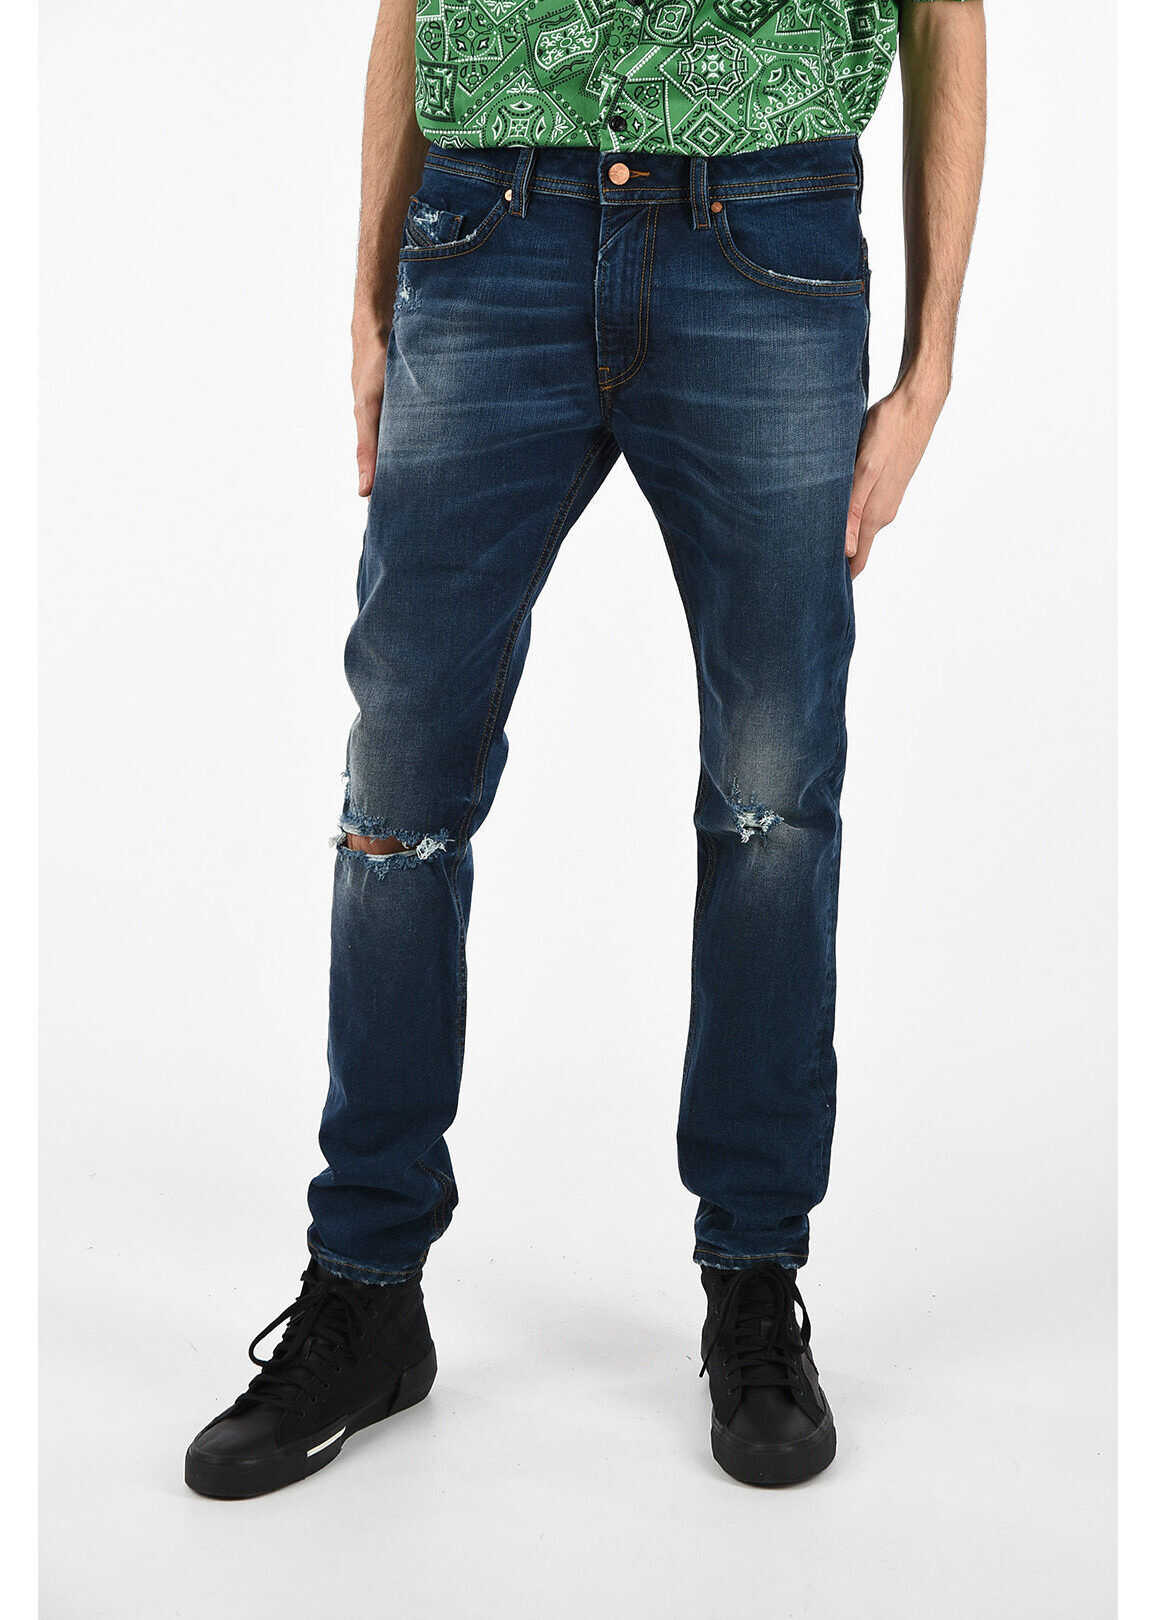 16cm Distressed THOMMER L.32 Jeans thumbnail